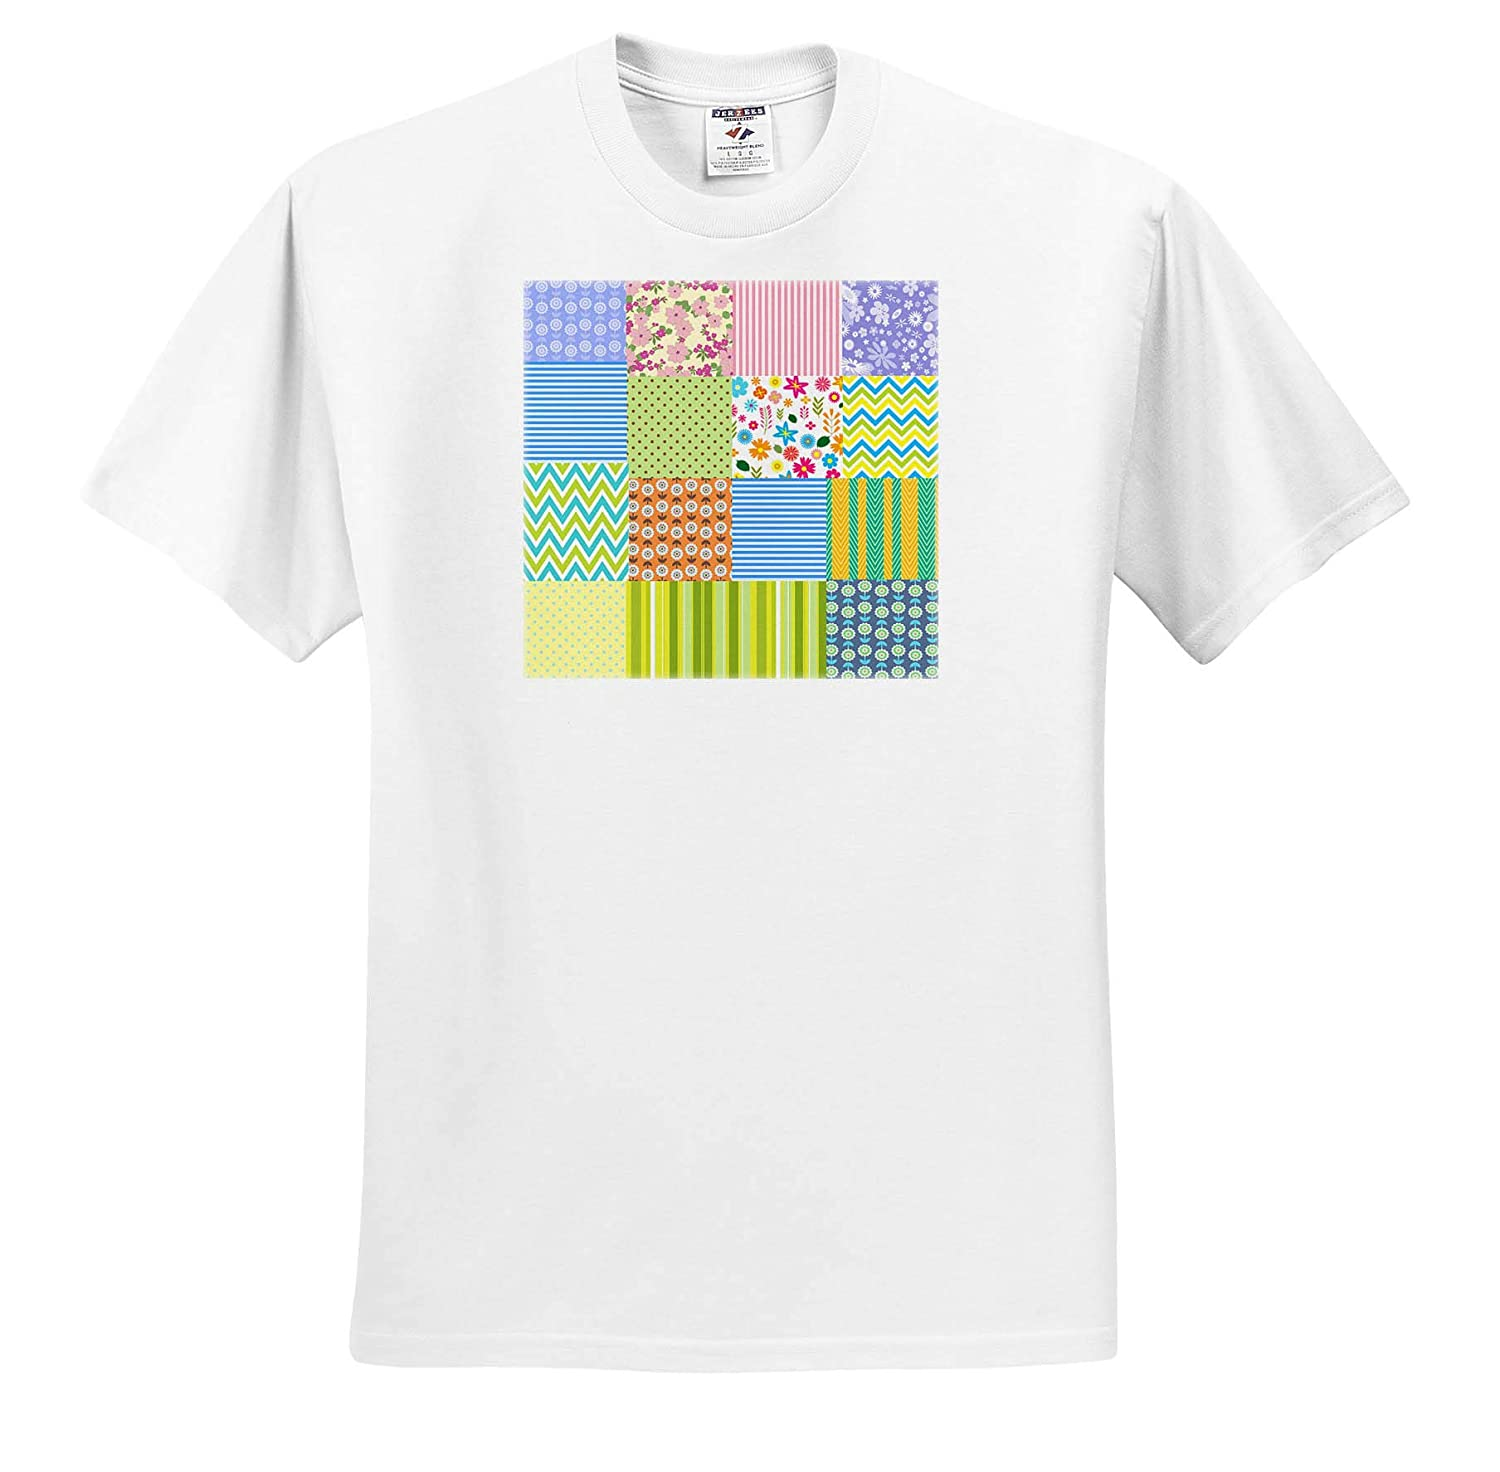 3dRose Lens Art by Florene T-Shirts Floral and Tree Abstracts Image of Quilted Pattern of Floral and Stripes